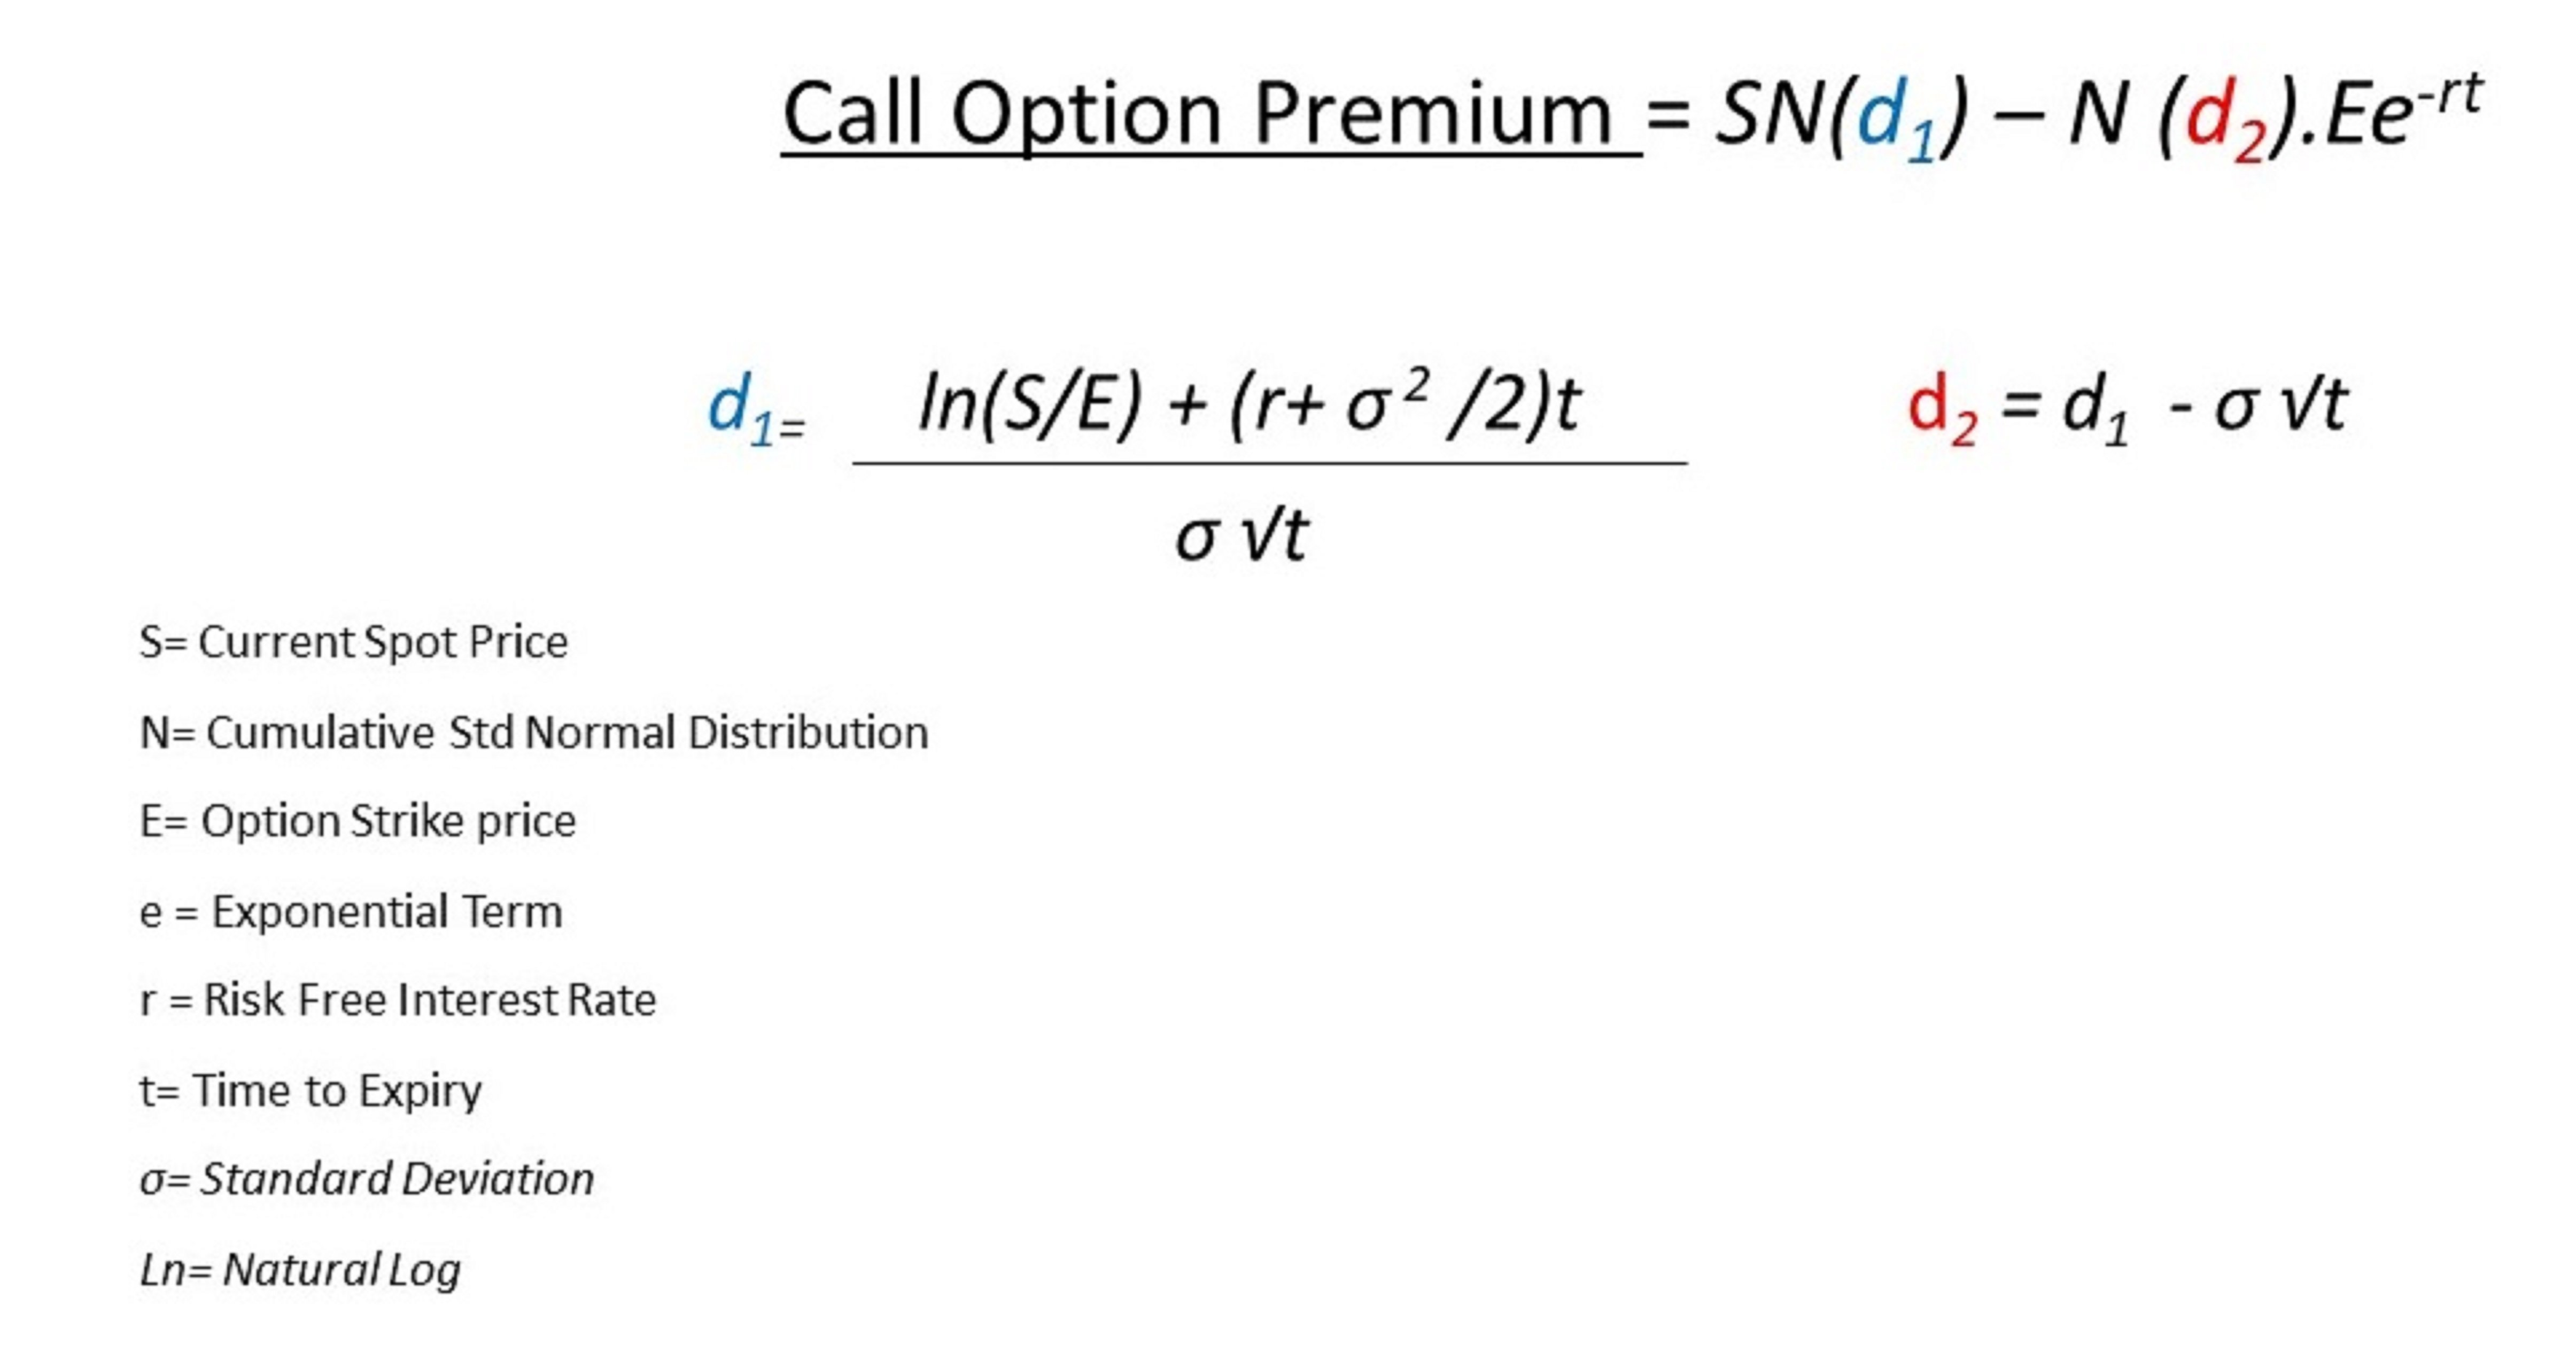 Black and Scholes Model Formula for Option Pricing